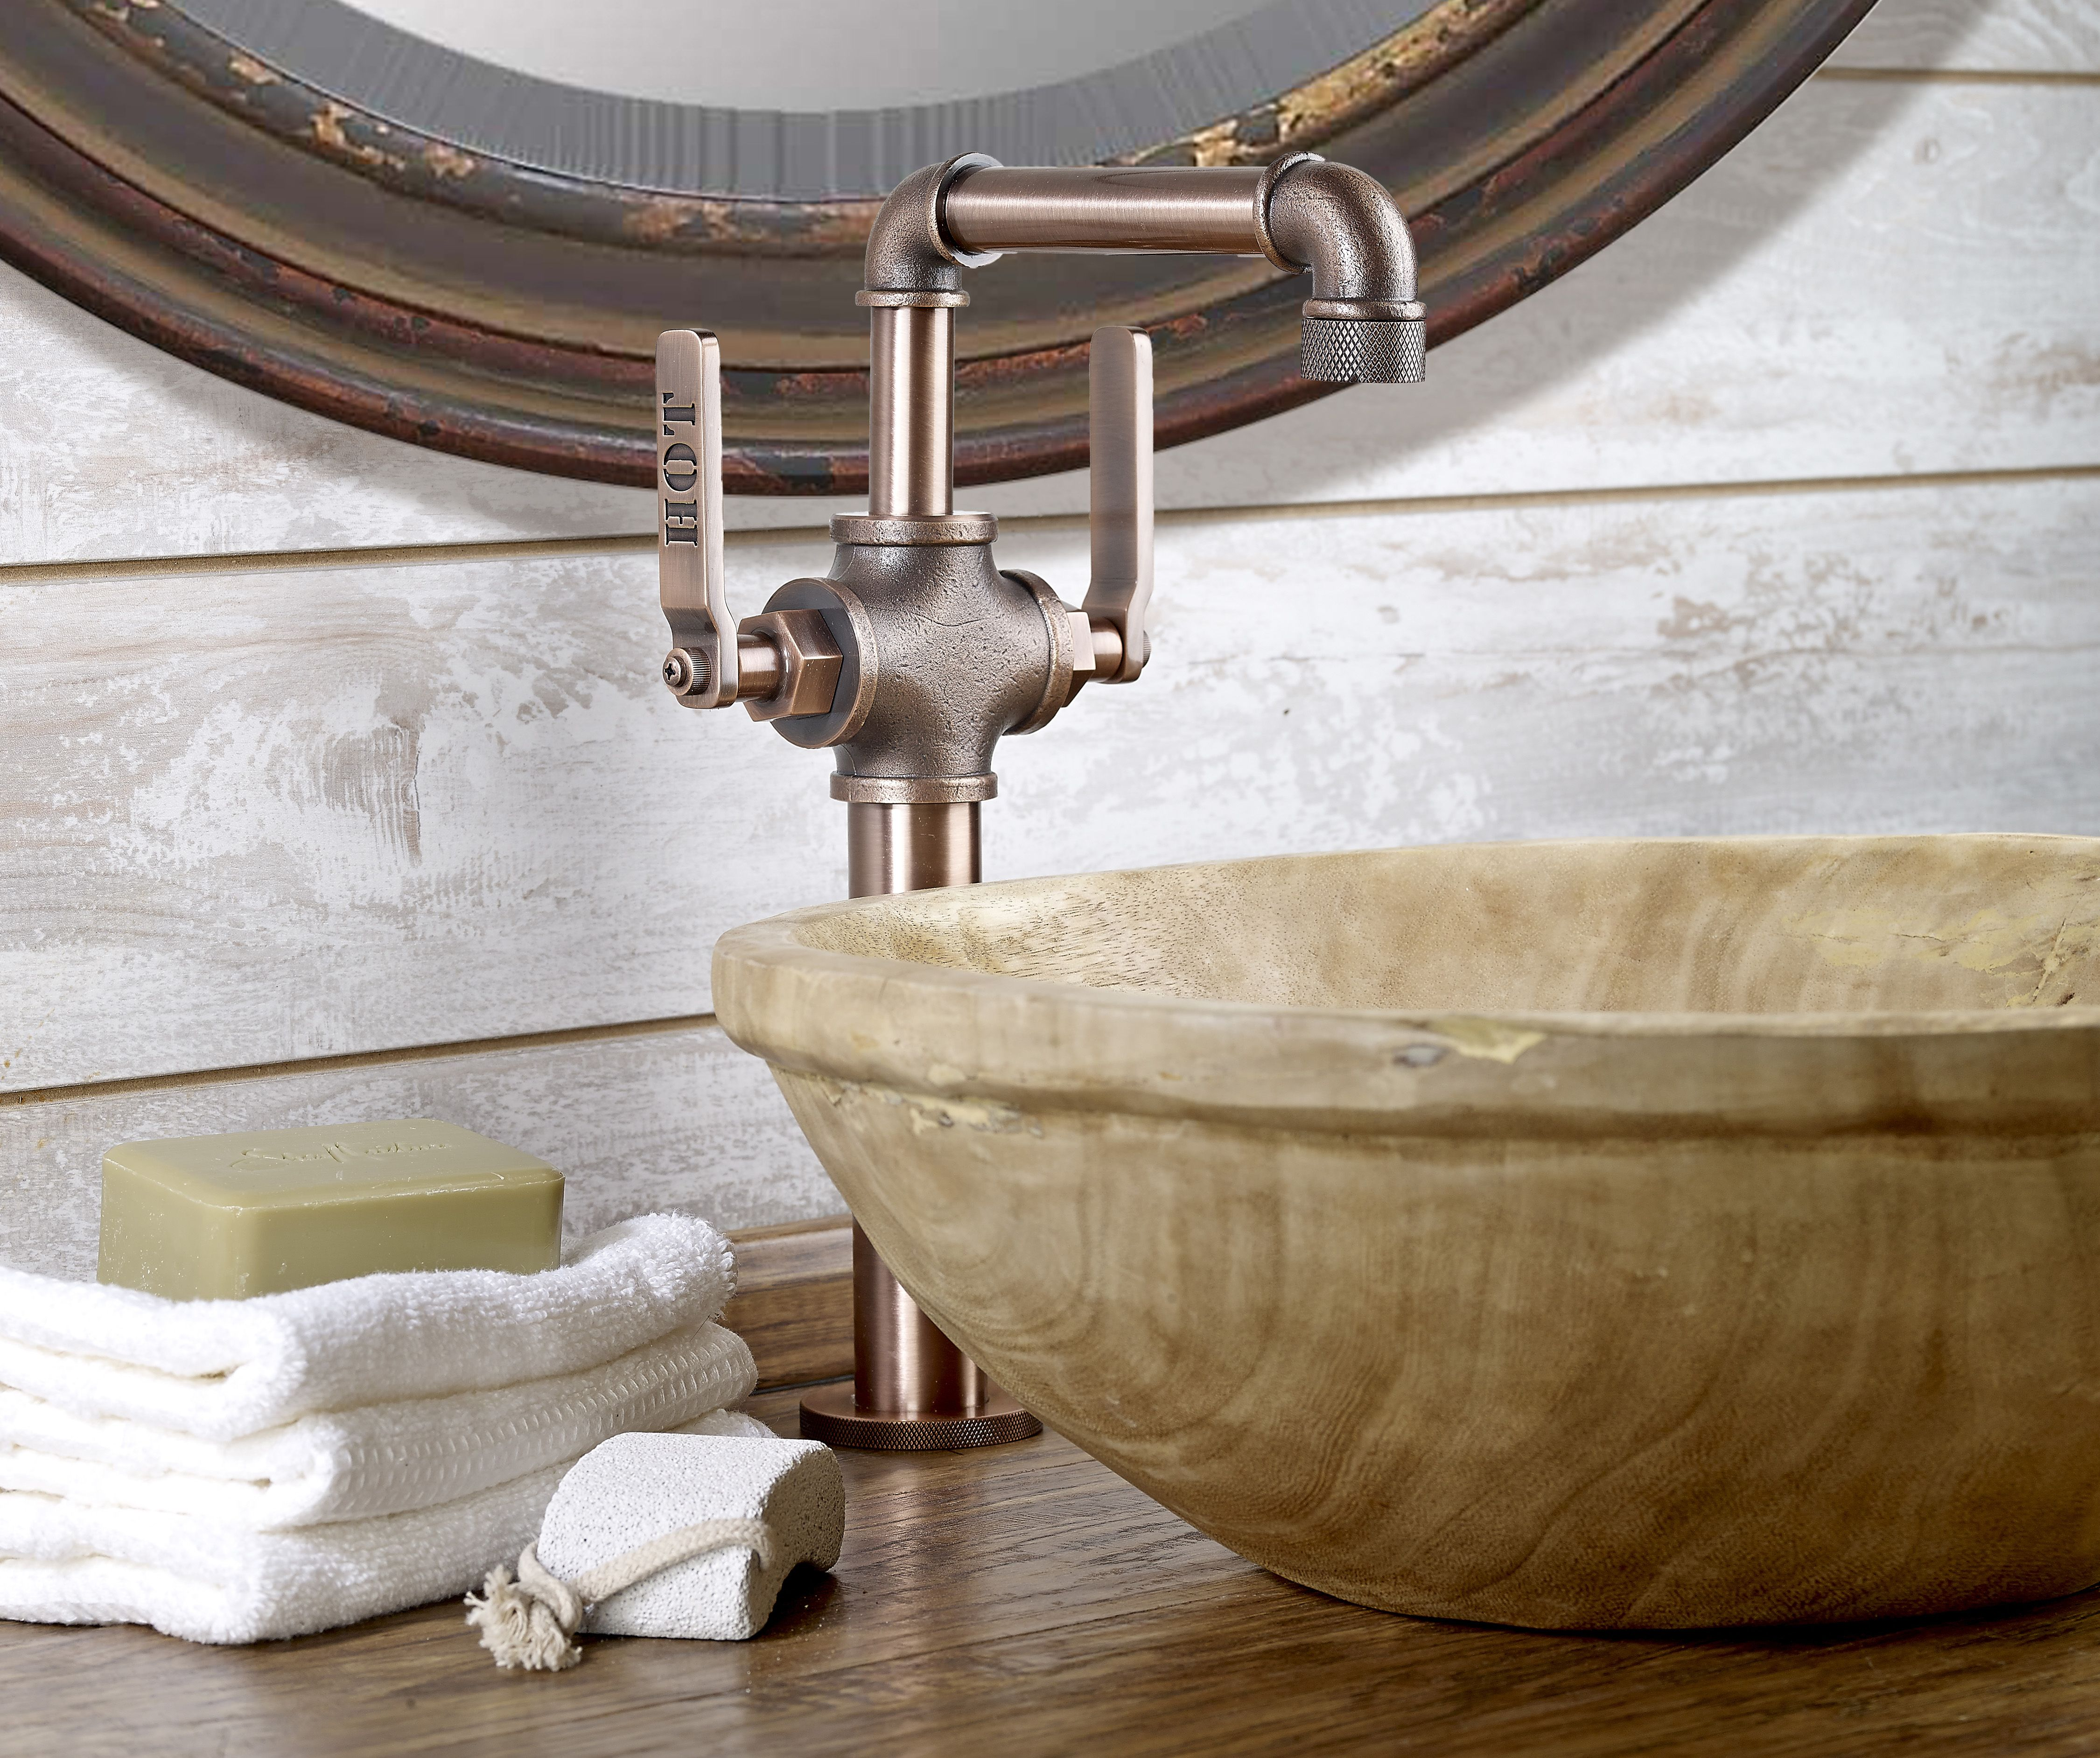 Elan Vital Single Hole Deck Mount By Watermark Designs Alexander Marchant Www Al Industrial Bathroom Decor Bathroom Faucets Farmhouse Industrial Faucet